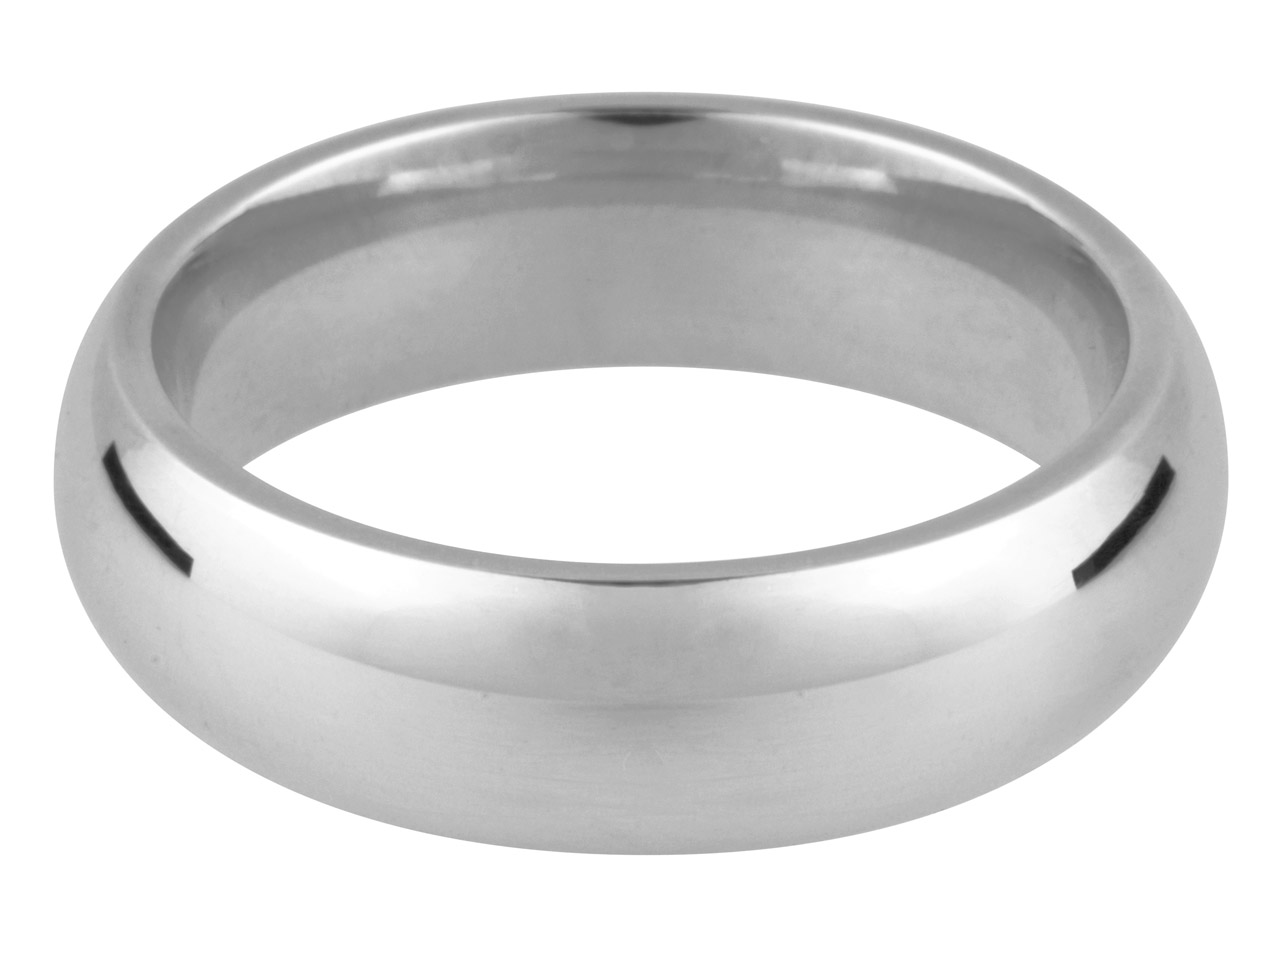 18ct White Court Wedding Ring 4.0mm K 6.8gms Heavy Weight Hallmarked    Wall Thickness 2.25mm